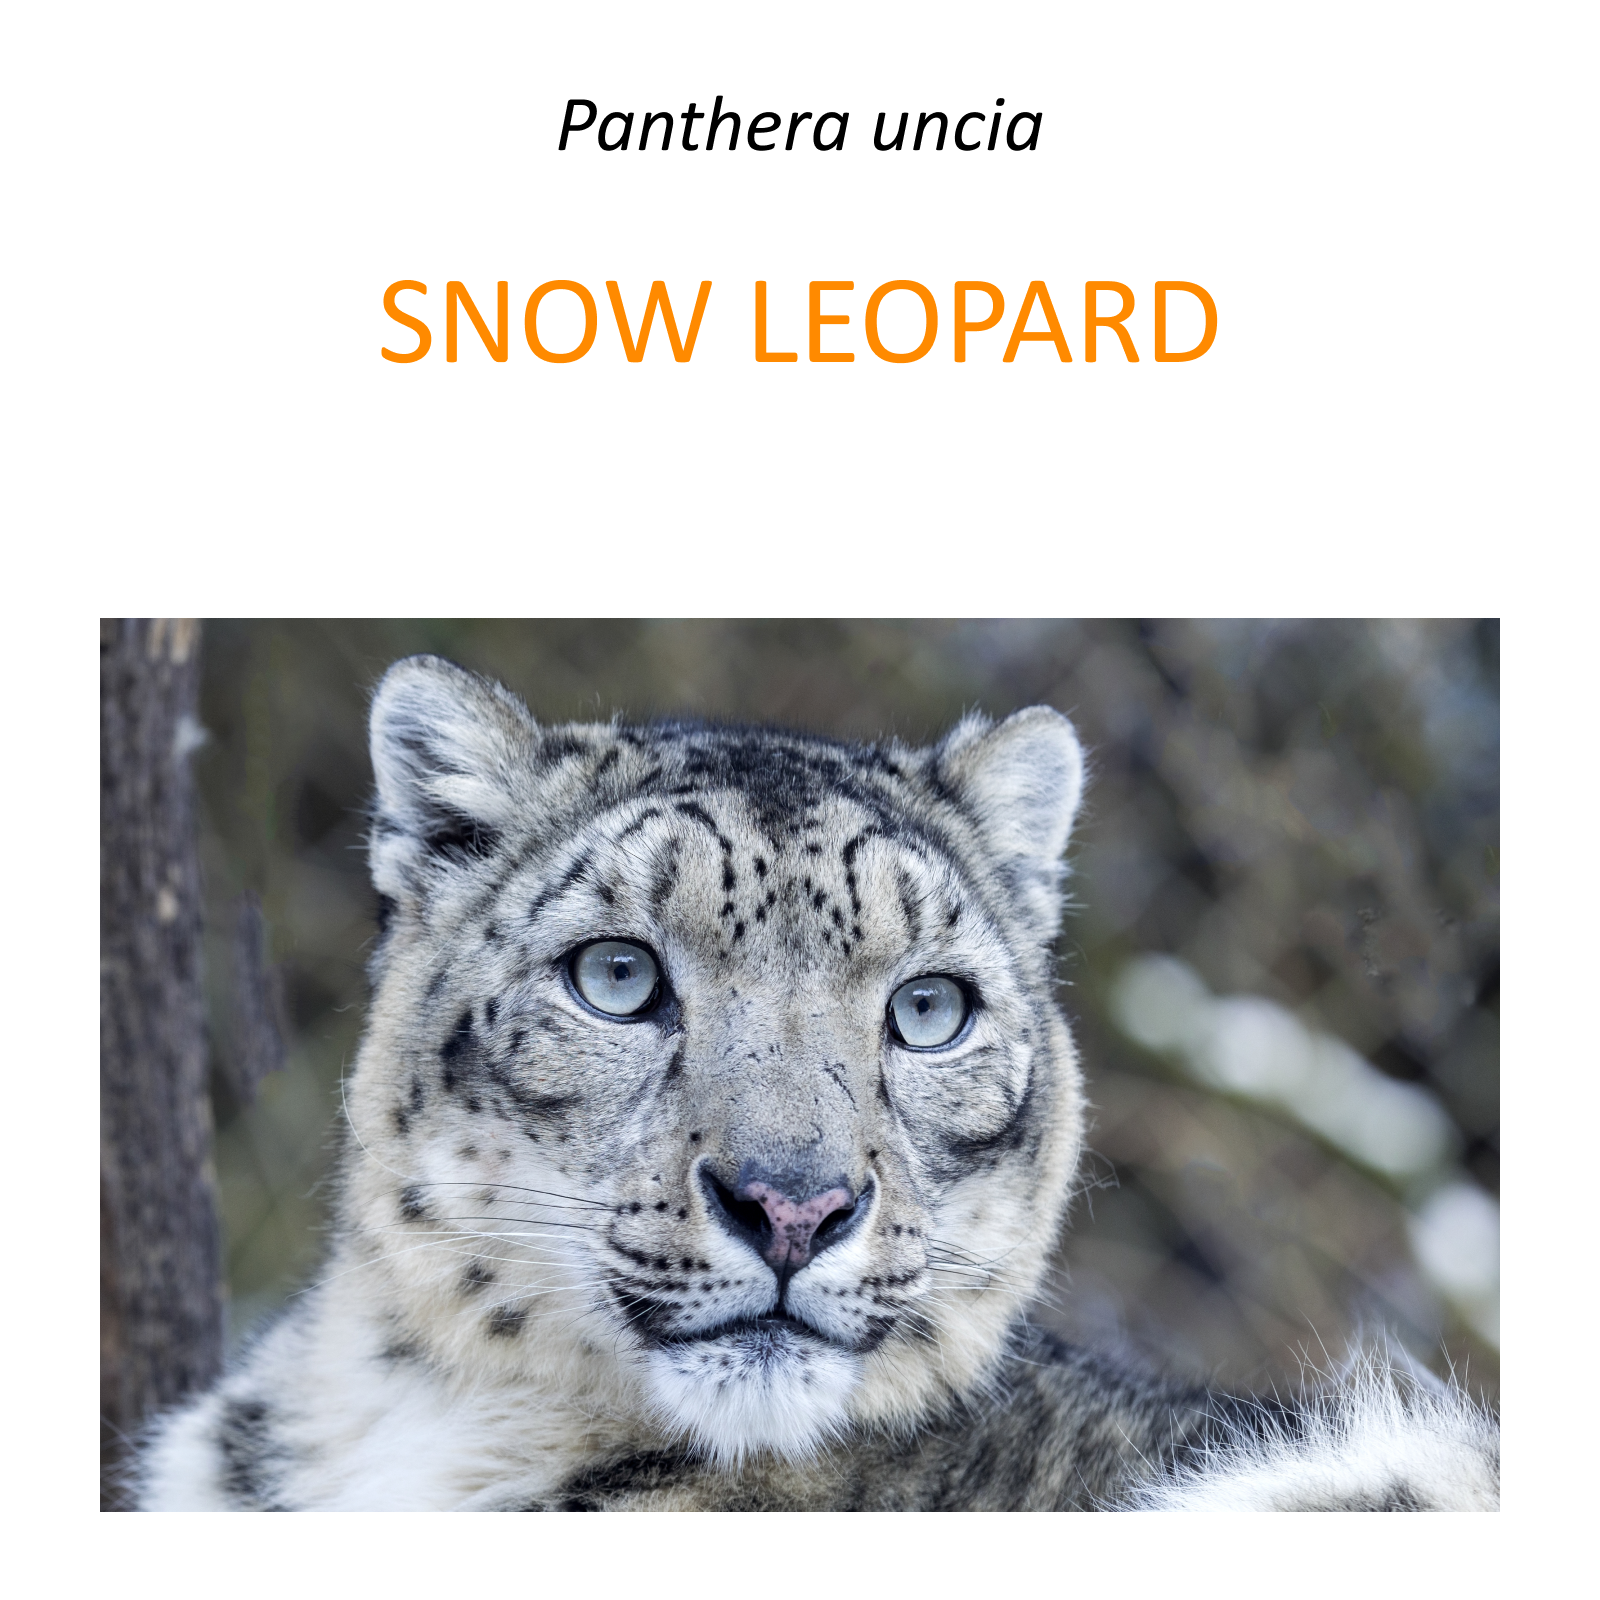 Snow leopard conservation program